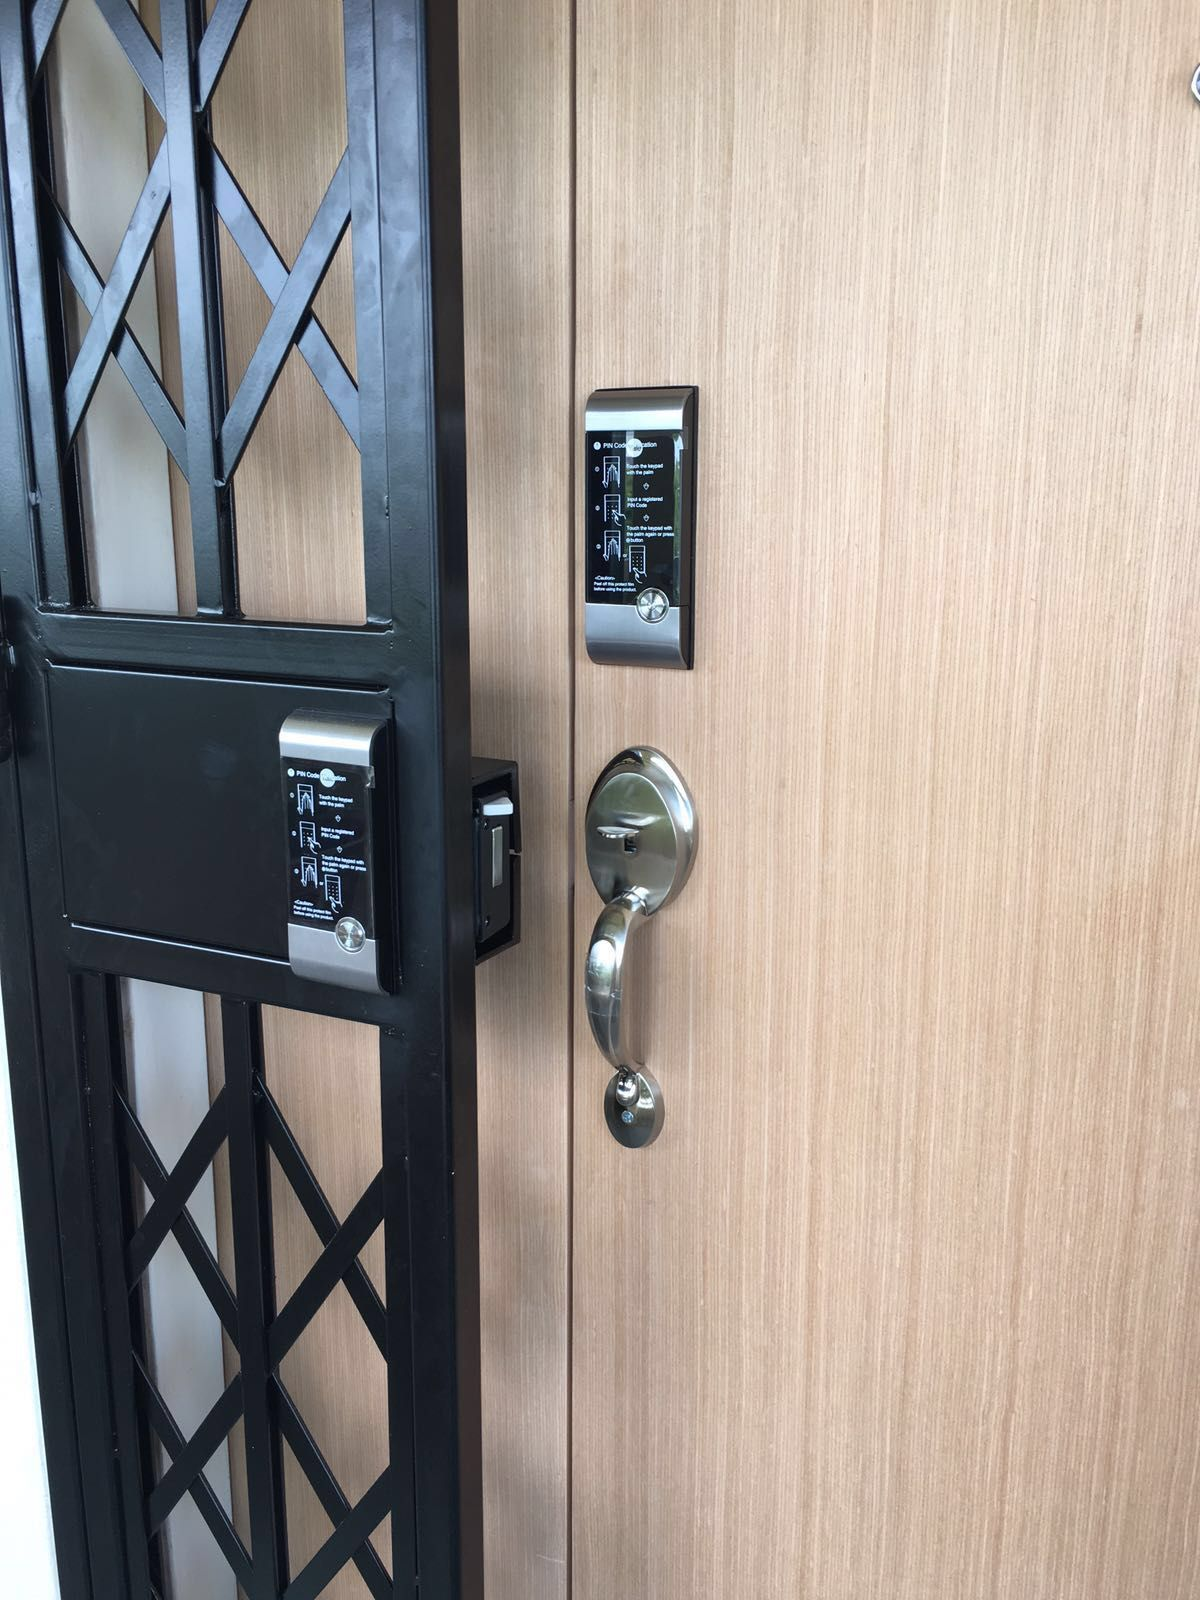 Yale Ydr 3110 Digital Door Lock Promotion Install On Hdb